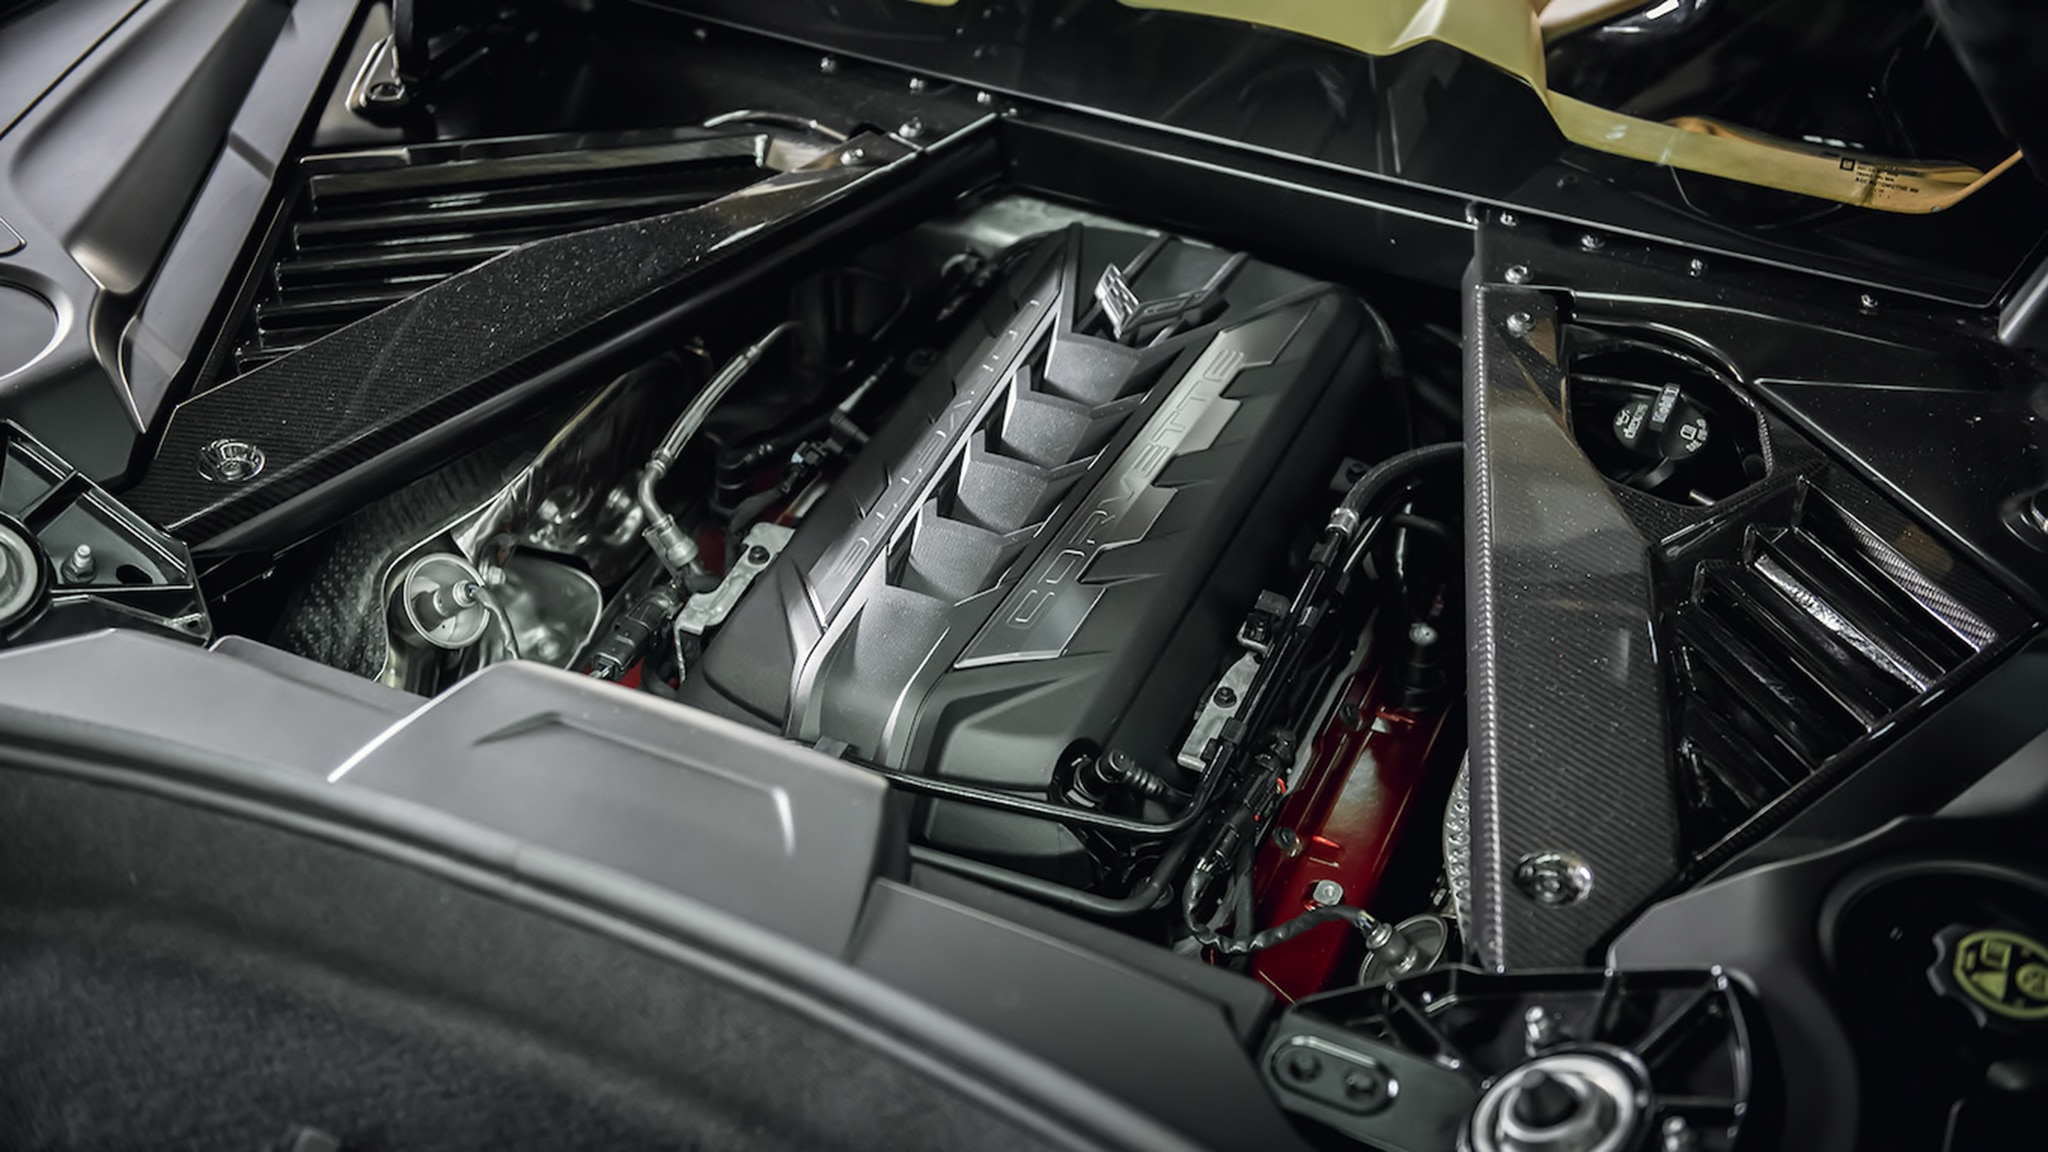 The 10 Best Chevrolet Engines - Automobile Magazine